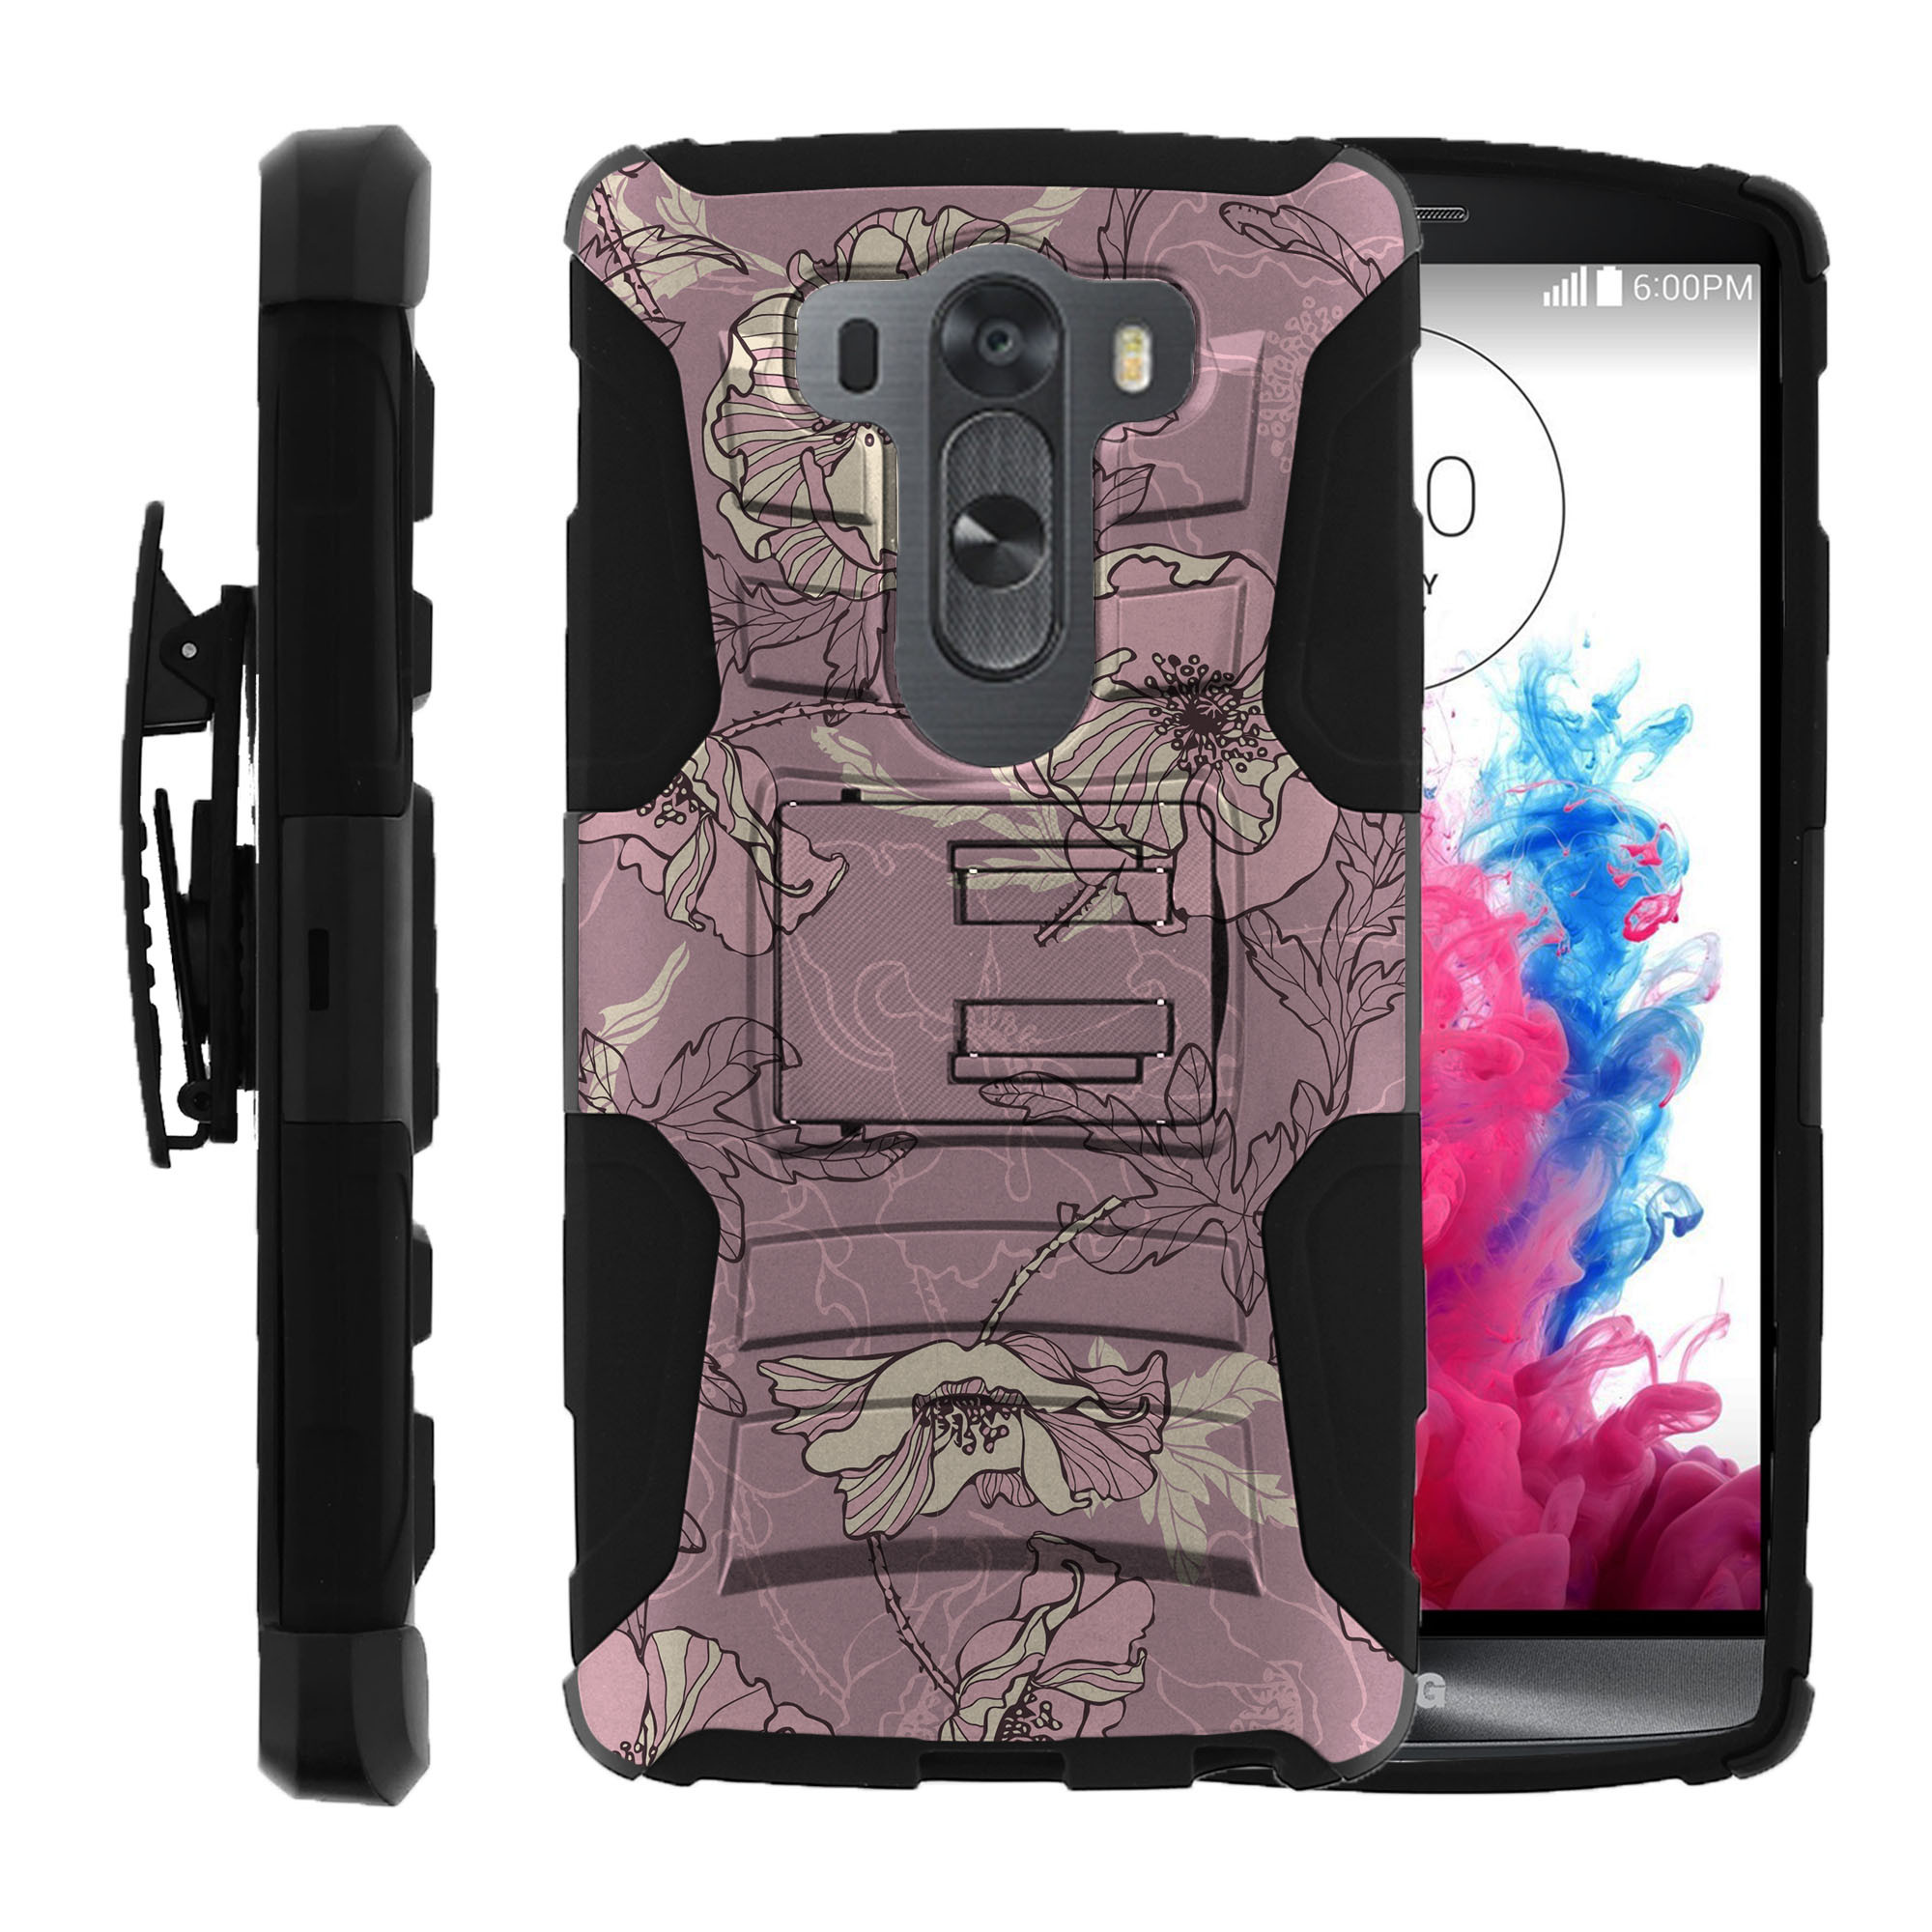 LG V10 and LG G4 PRO Miniturtle® Clip Armor Dual Layer Case Rugged Exterior with Built in Kickstand + Holster - Artistic Color Flower